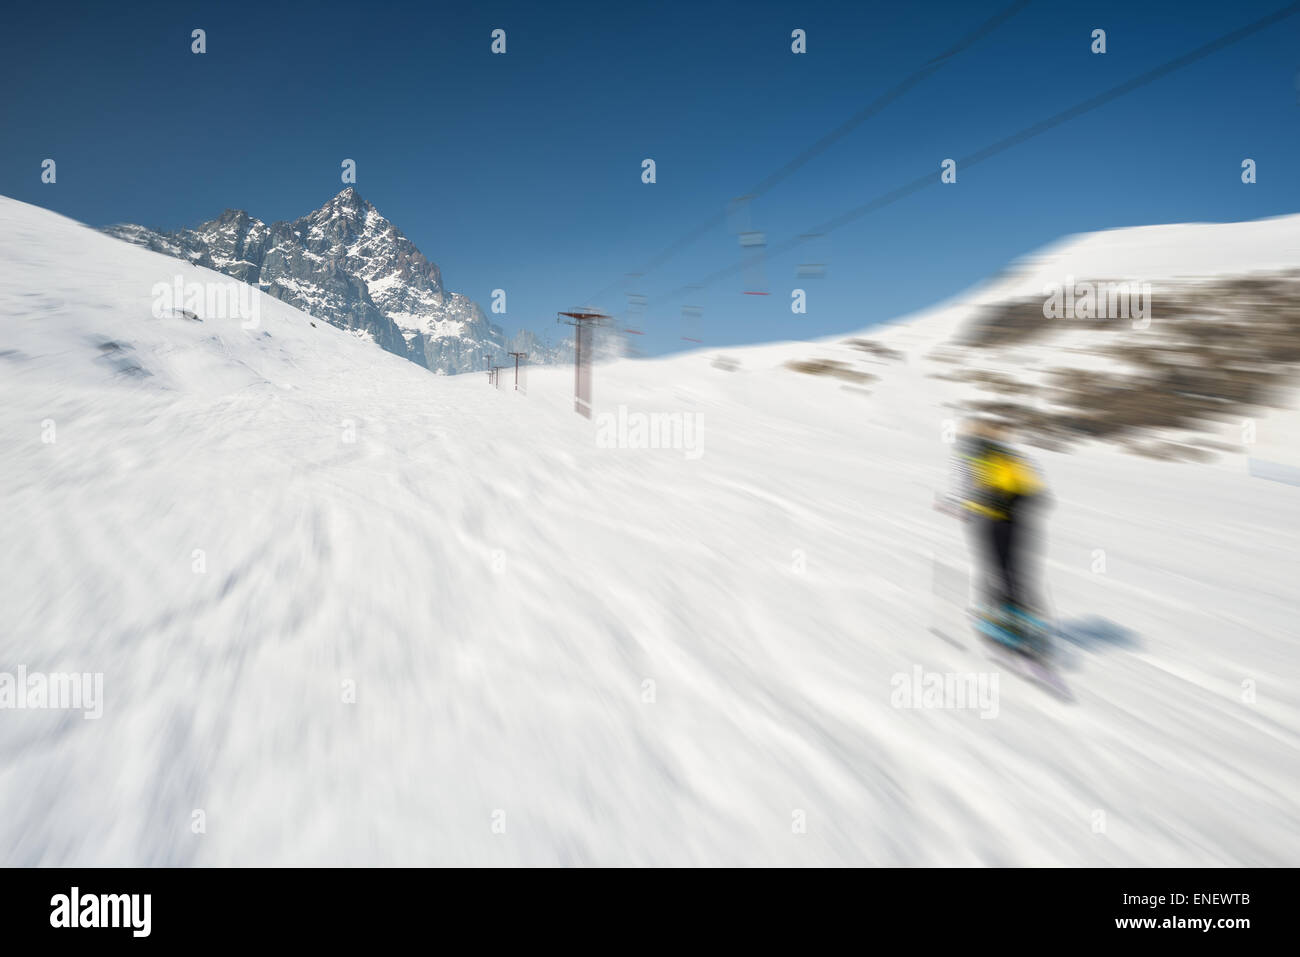 Skiing on snowy slope in scenic ski resort of the italian Alps, with bright sunny day of spring season and high - Stock Image